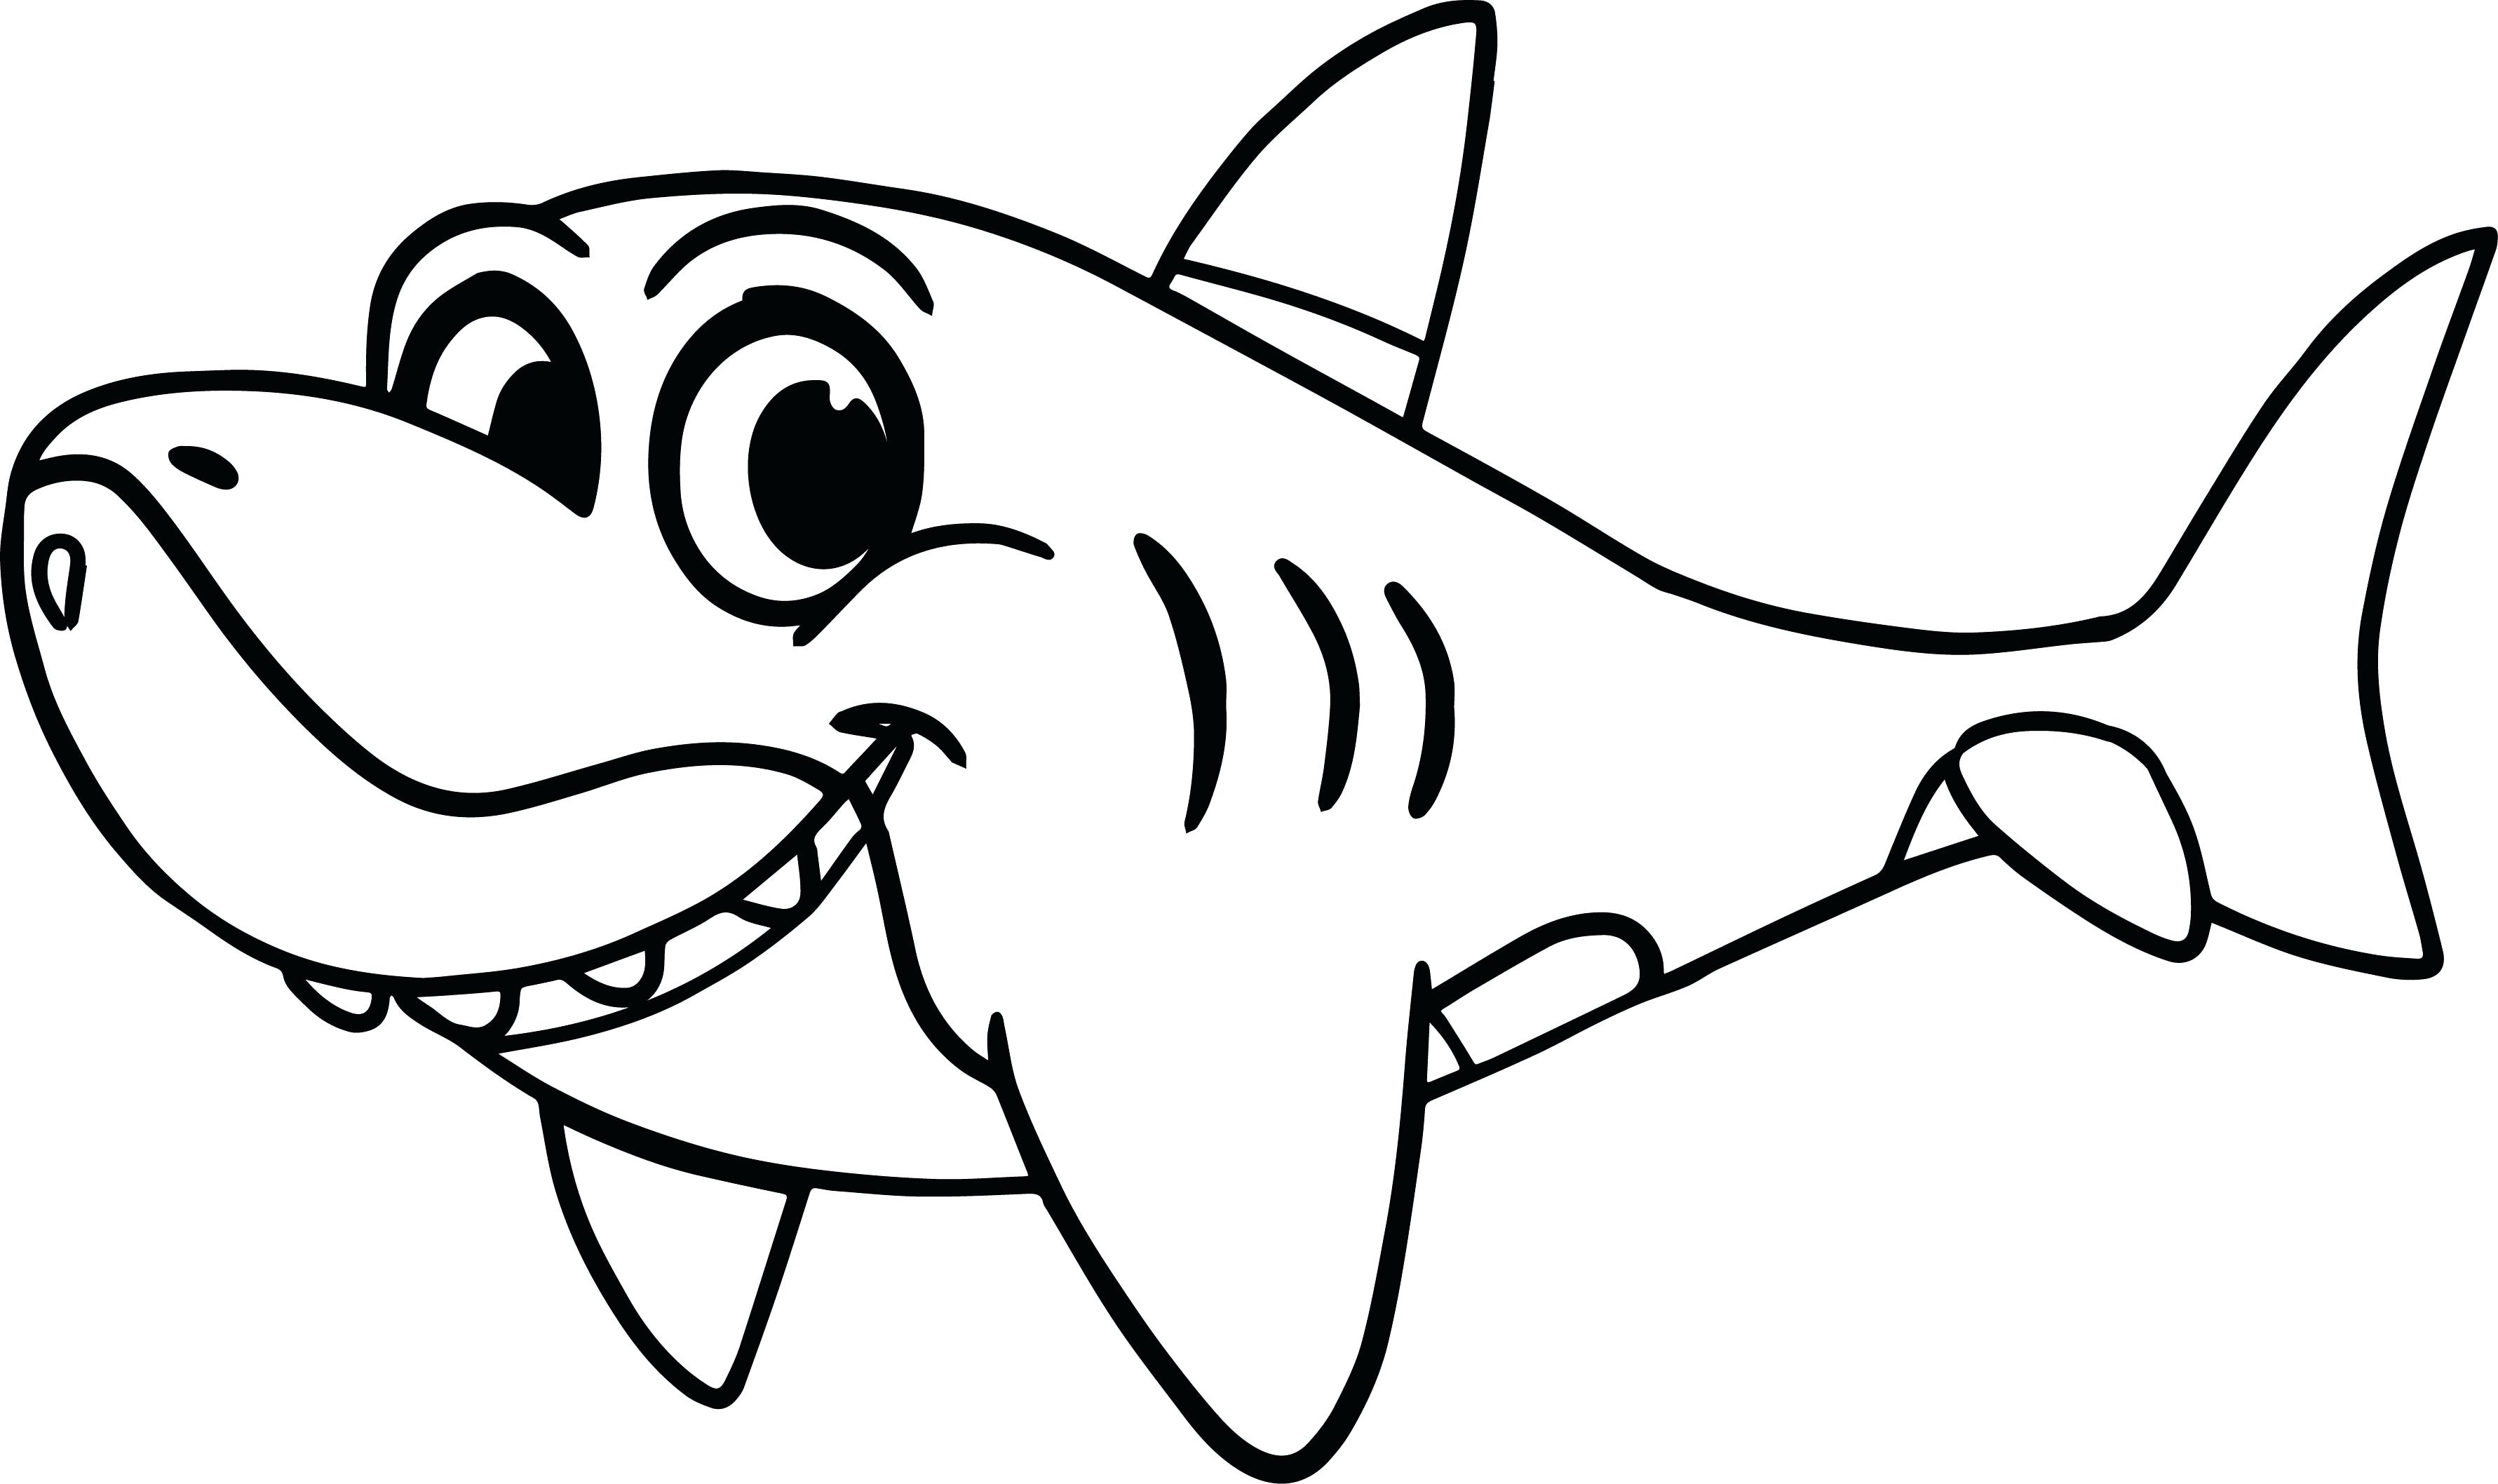 Great White Shark Coloring Pages to Print   Free Coloring ...